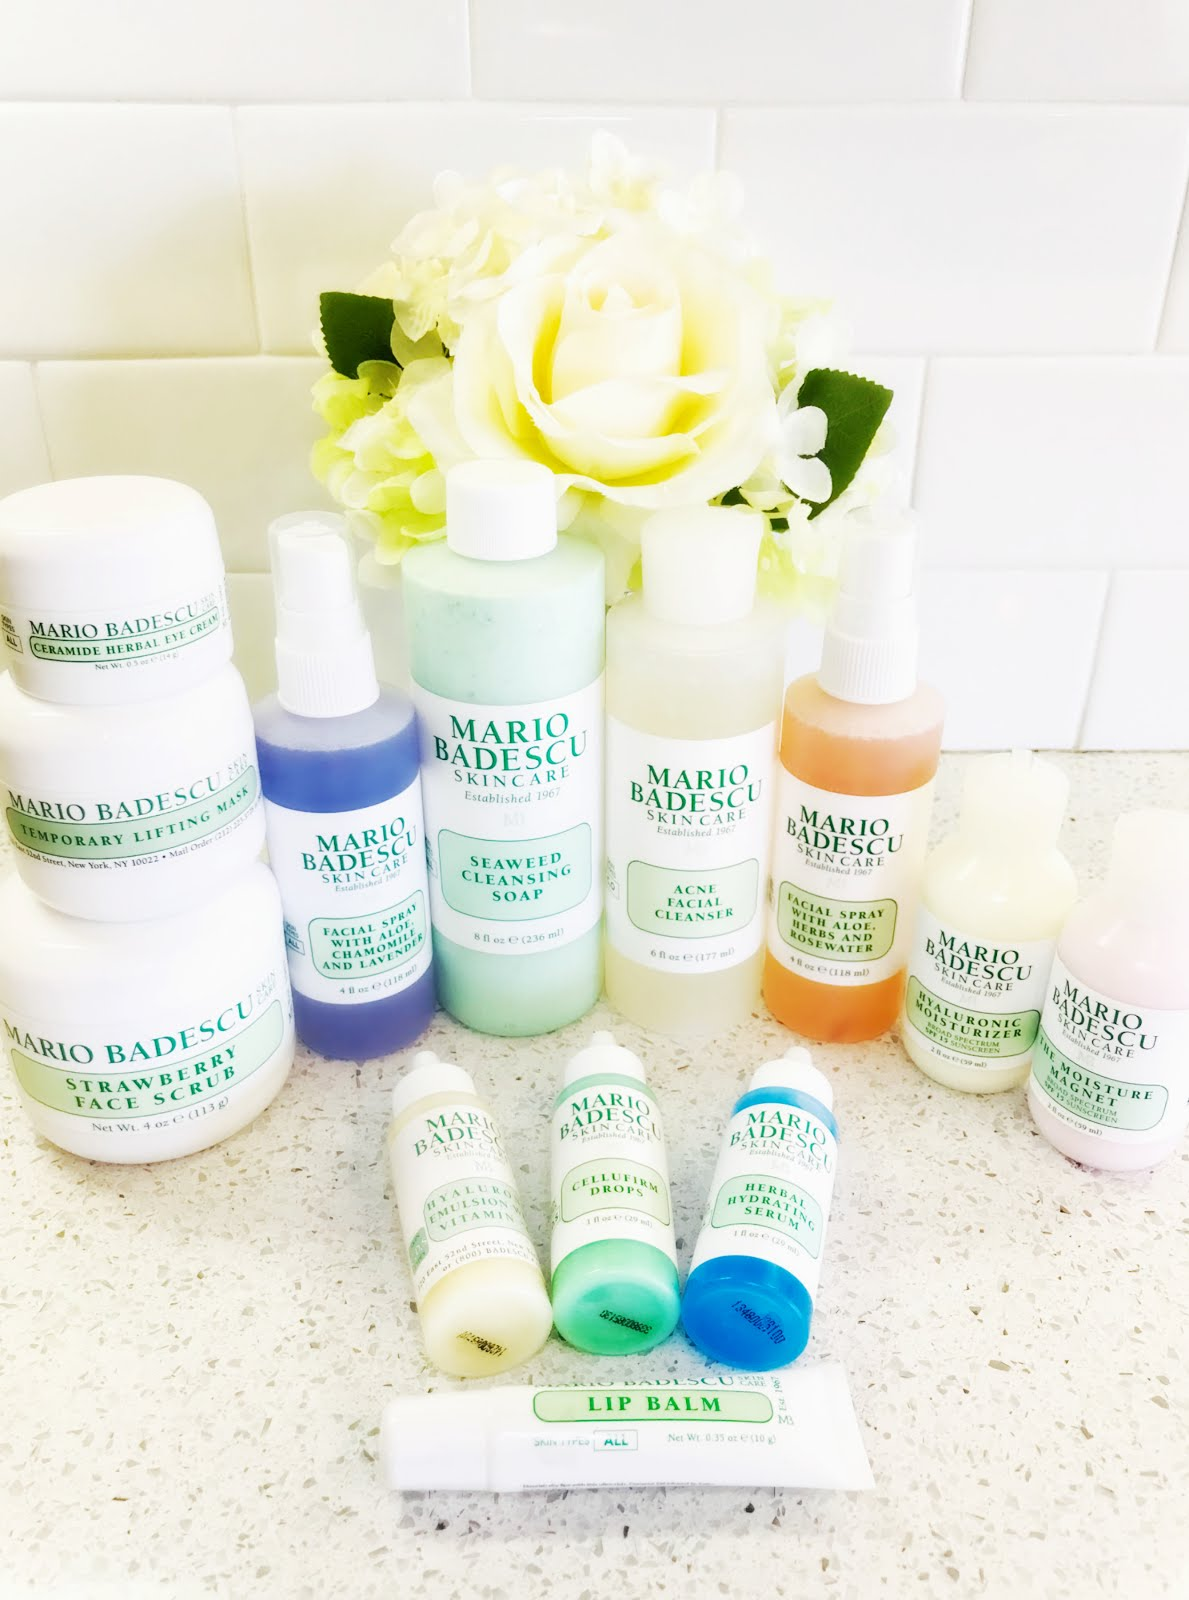 Perfect Your Skin this Summer and Beyond with Mario Badescu Skin Care!